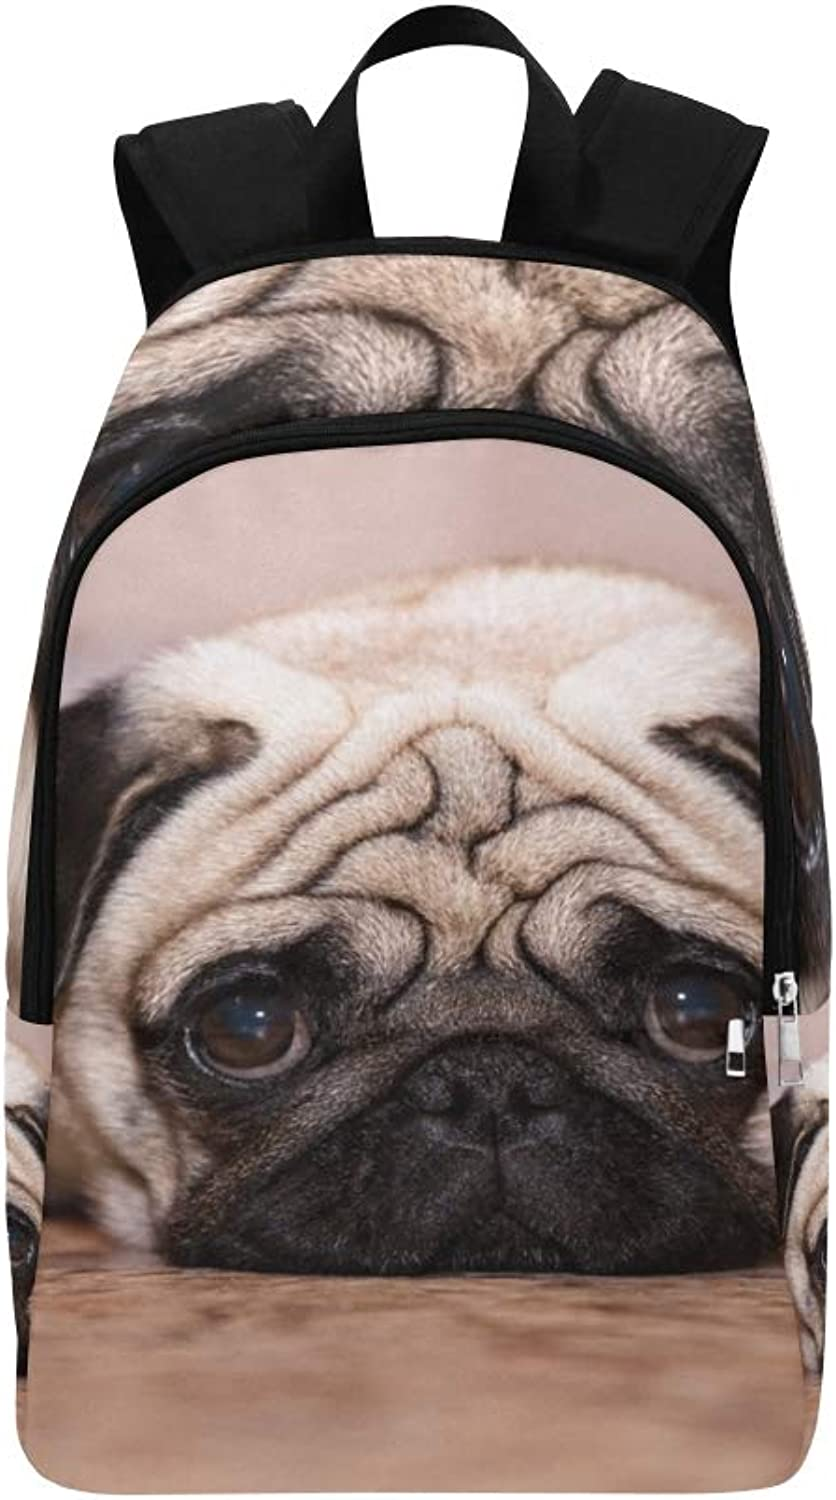 Dog Pug Lies On Floor Casual Daypack Travel Bag College School Backpack for Mens and Women